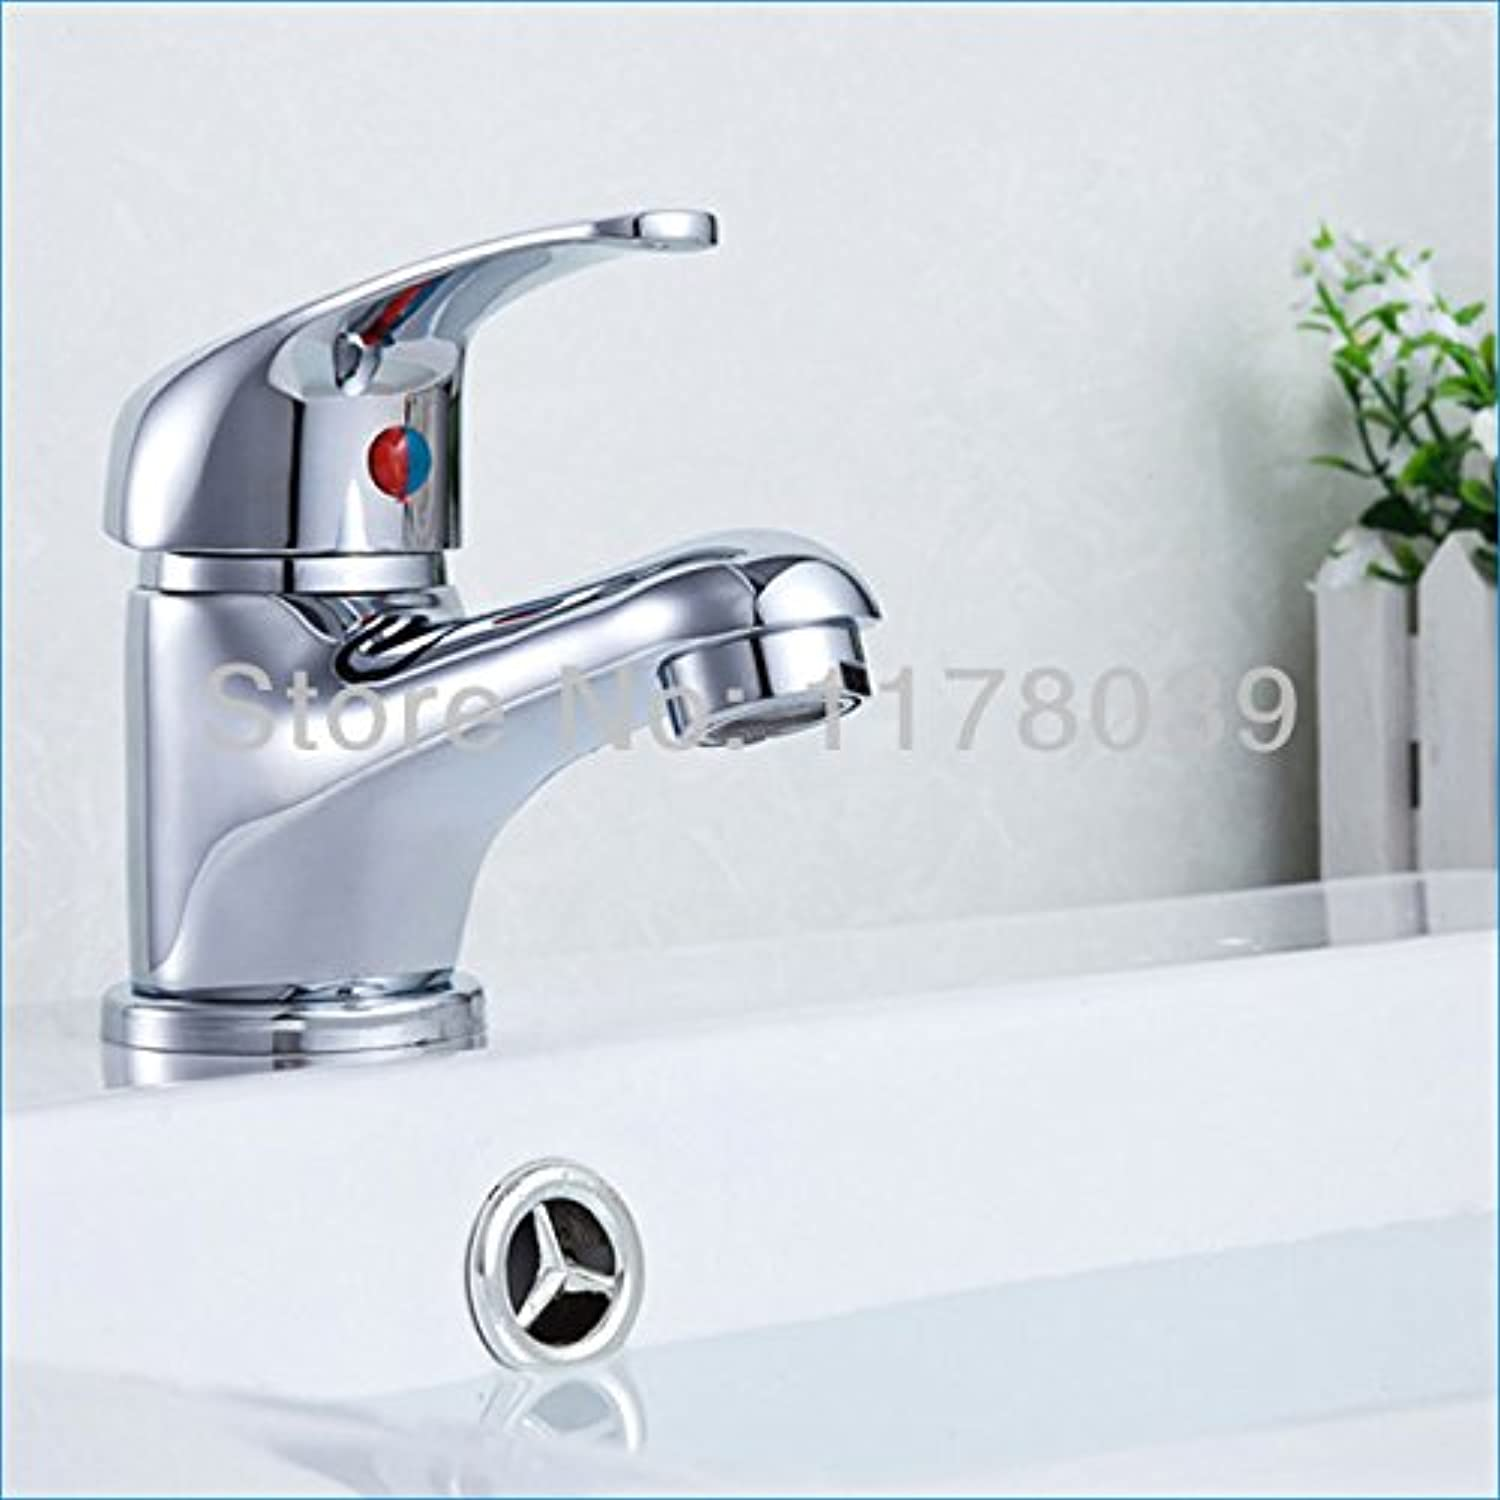 U-Enjoy Chrome Brass Bathroom Top Quality Faucets Mixers Wash Faucets Single Lever Hot and Cold Taps (Free Shipping)